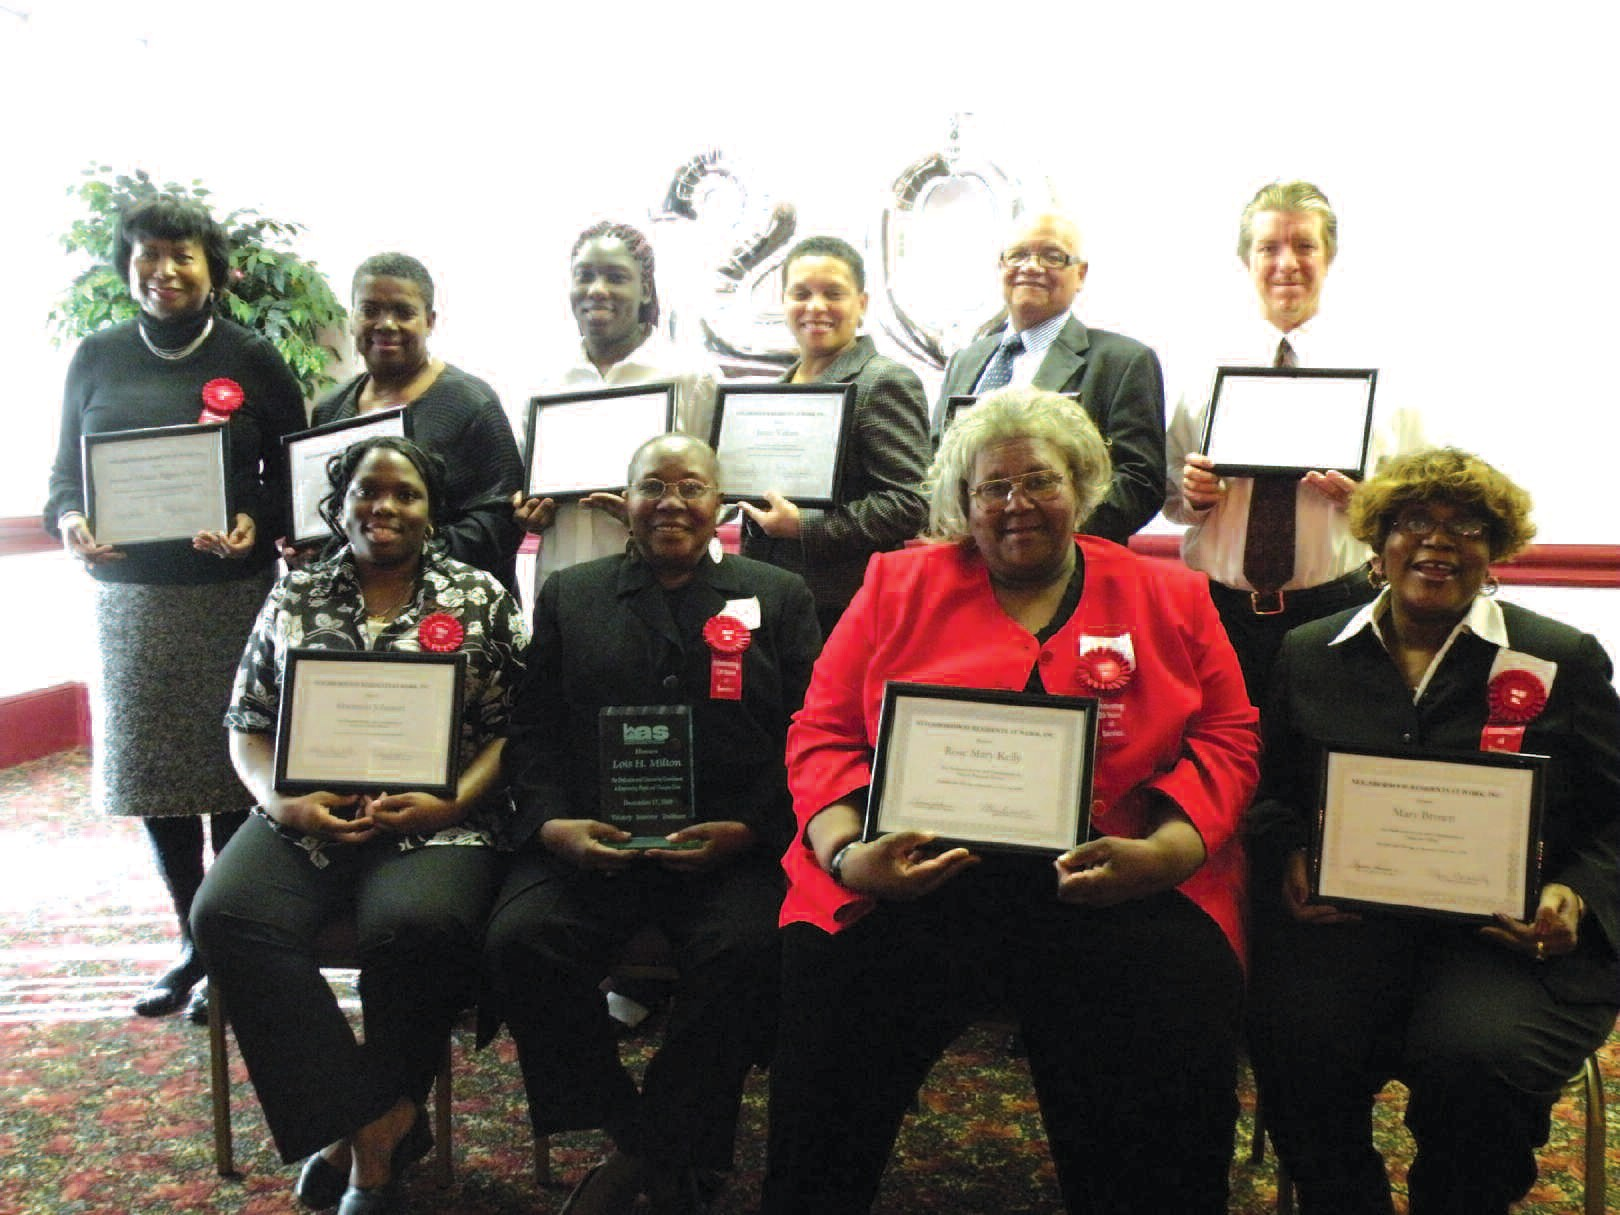 Those in attendance were recognized for their dedication to public housing communities. Lois Milton, (second from left) was honored for her service as an employee of the Housing Authority of Savannah.